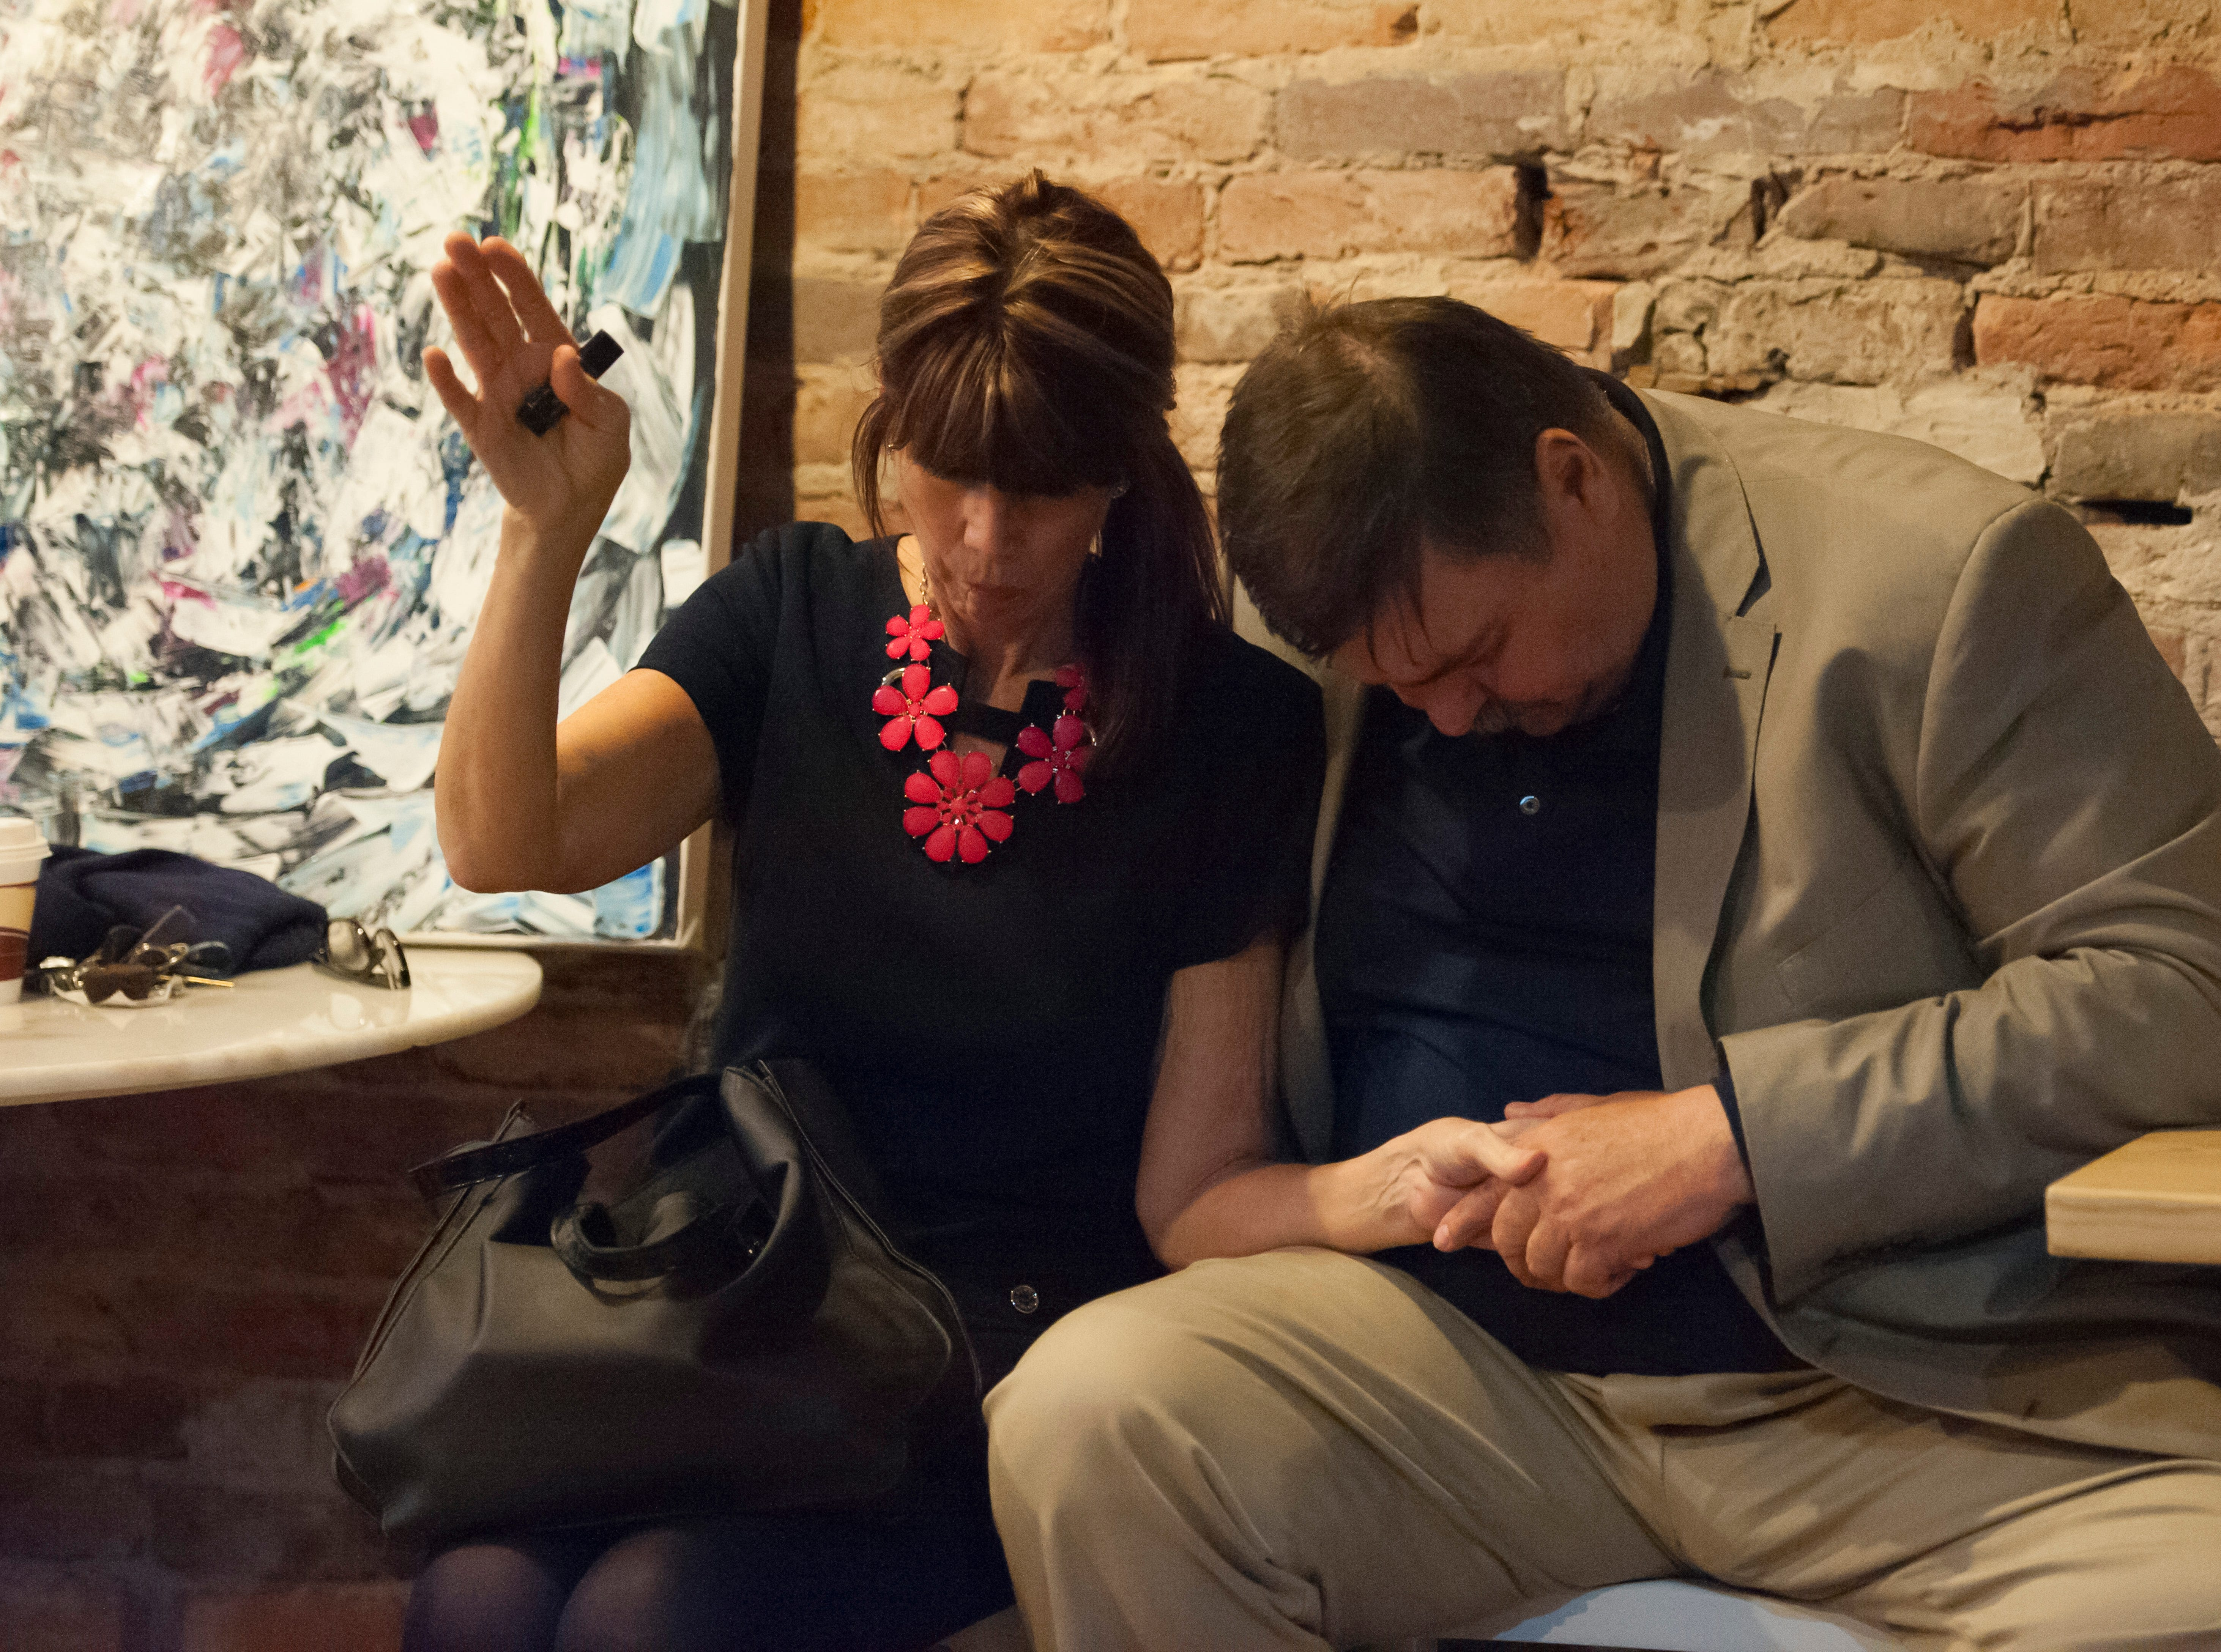 John and Debra Ward pray together at the end of Zion Baptist's Night of Hope event Sunday night at Paper City Coffee. Their son Timothy Stacey talked to a group of 50 people about his drug addiction issues and how his parents were a major part of his recovery.